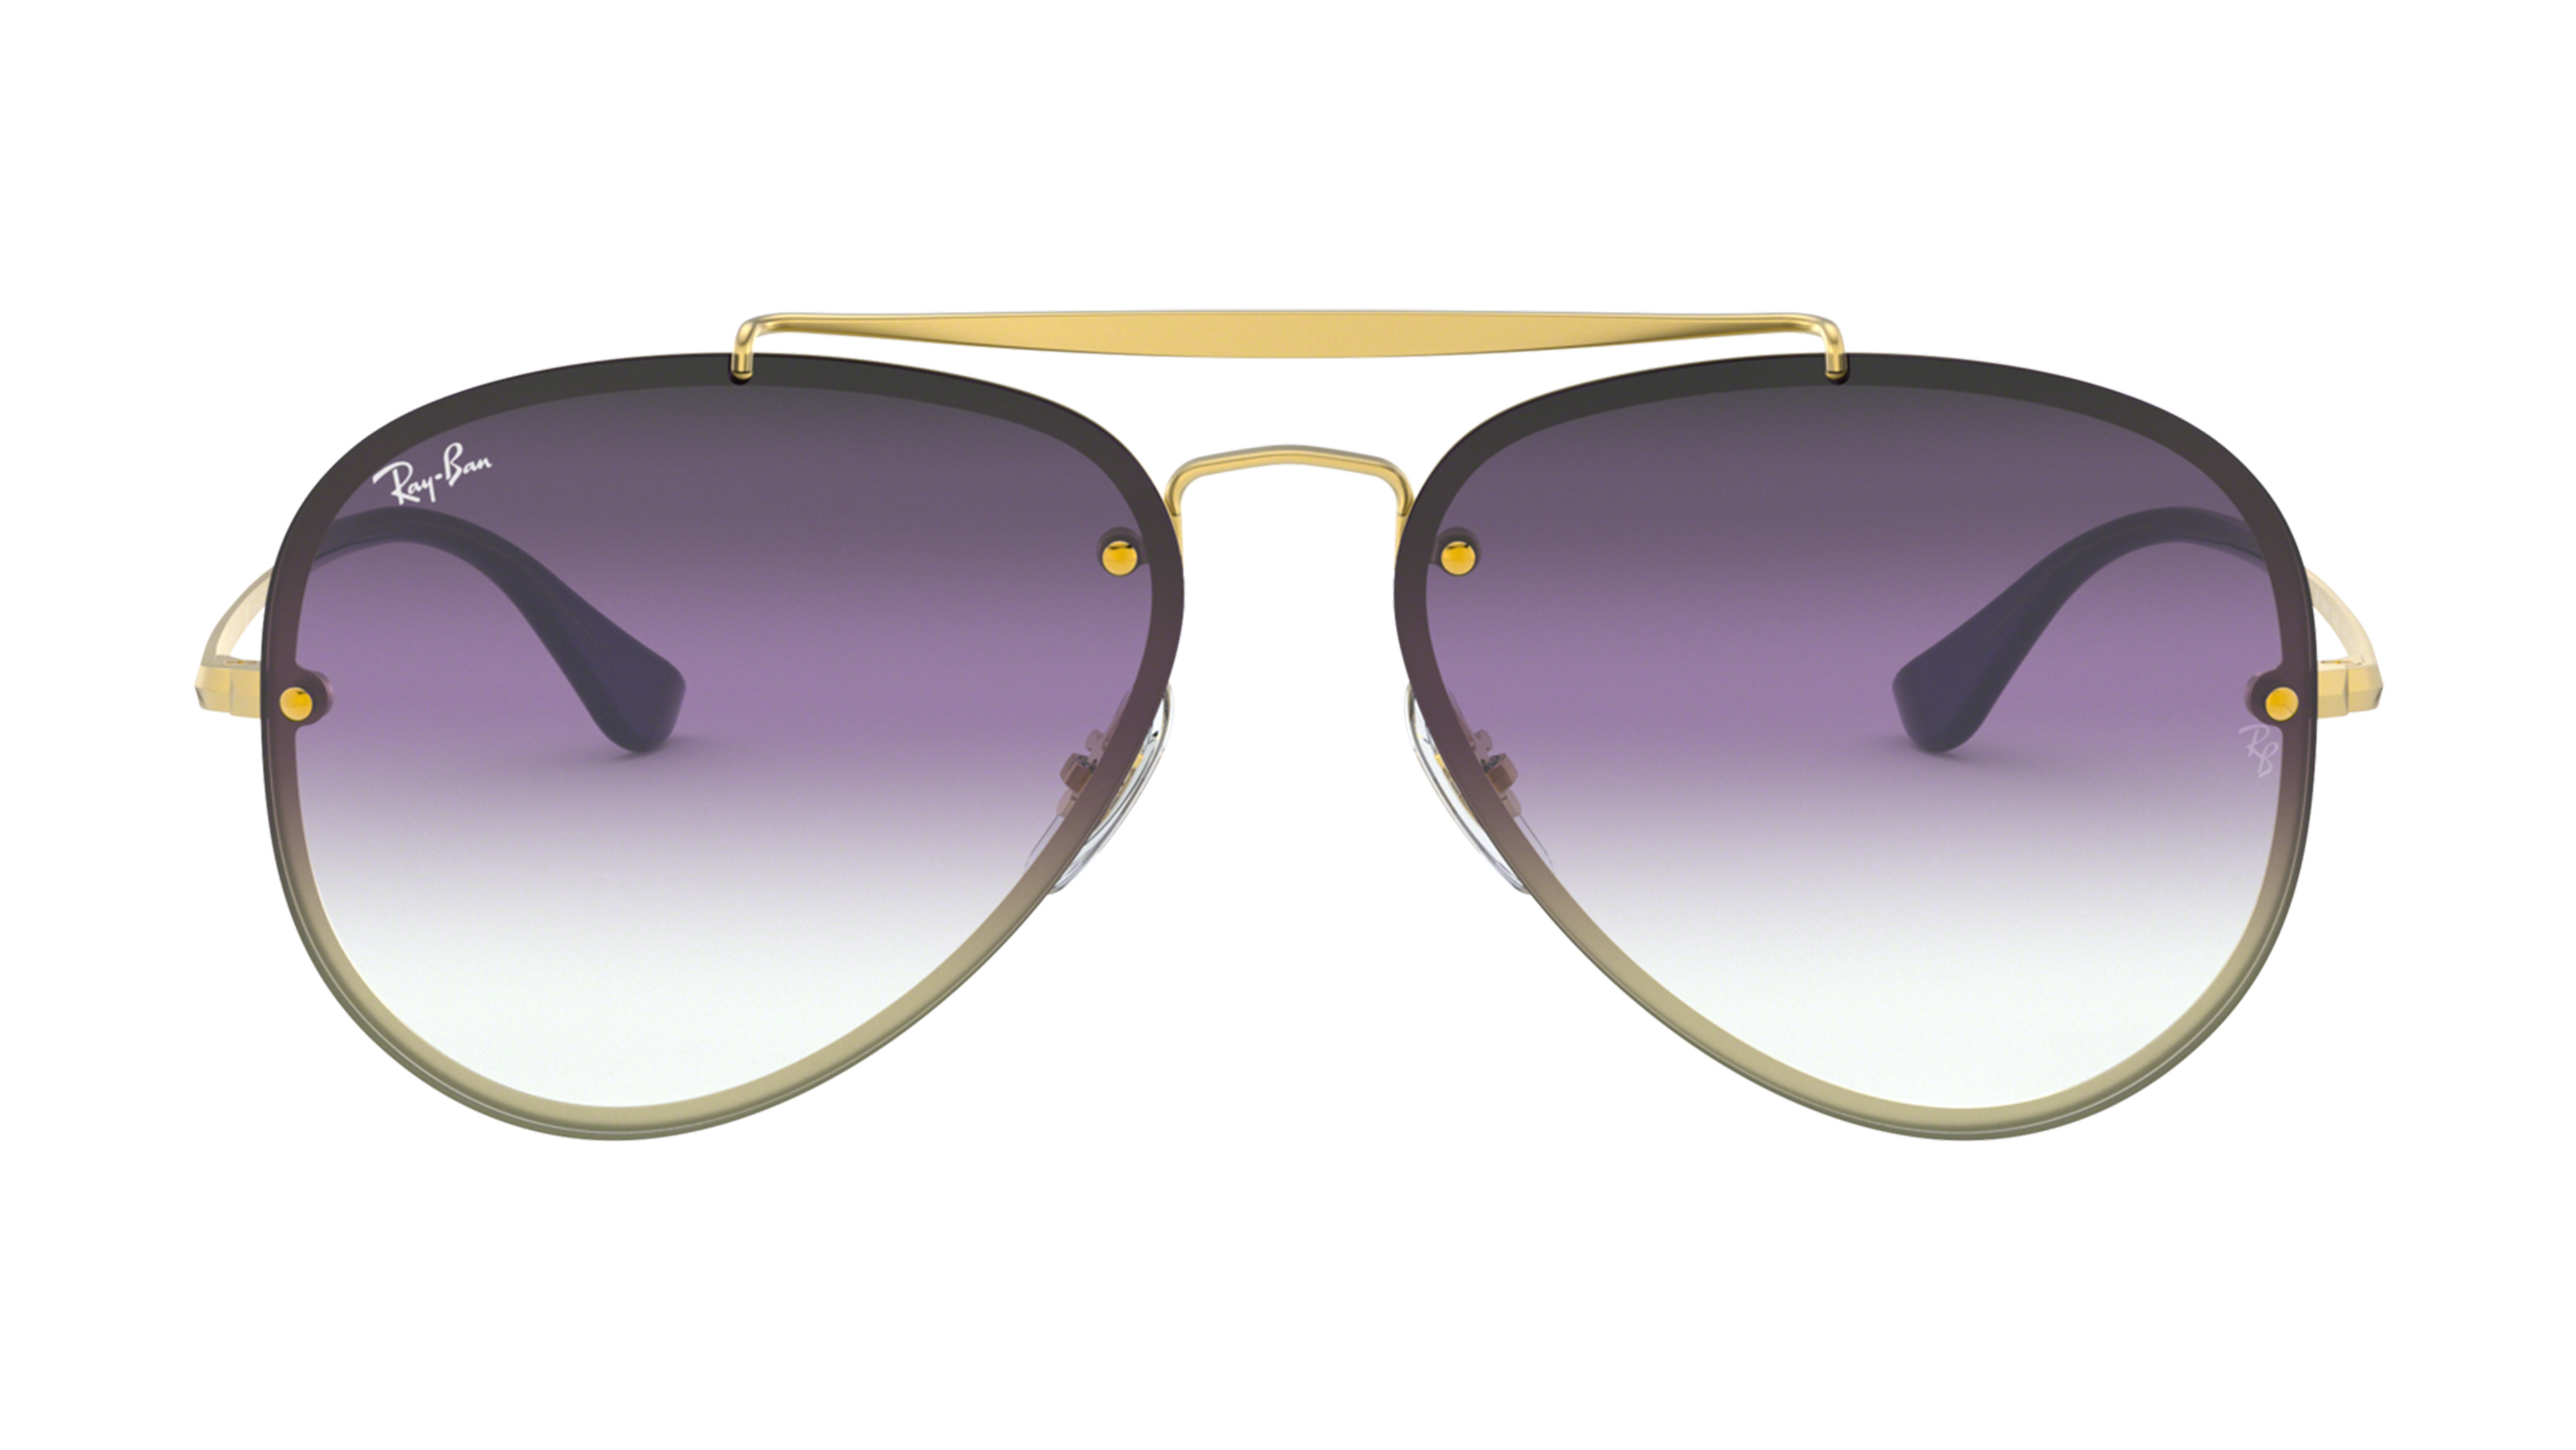 8053672980738-front-Ray-Ban-0RB3584N-91400U